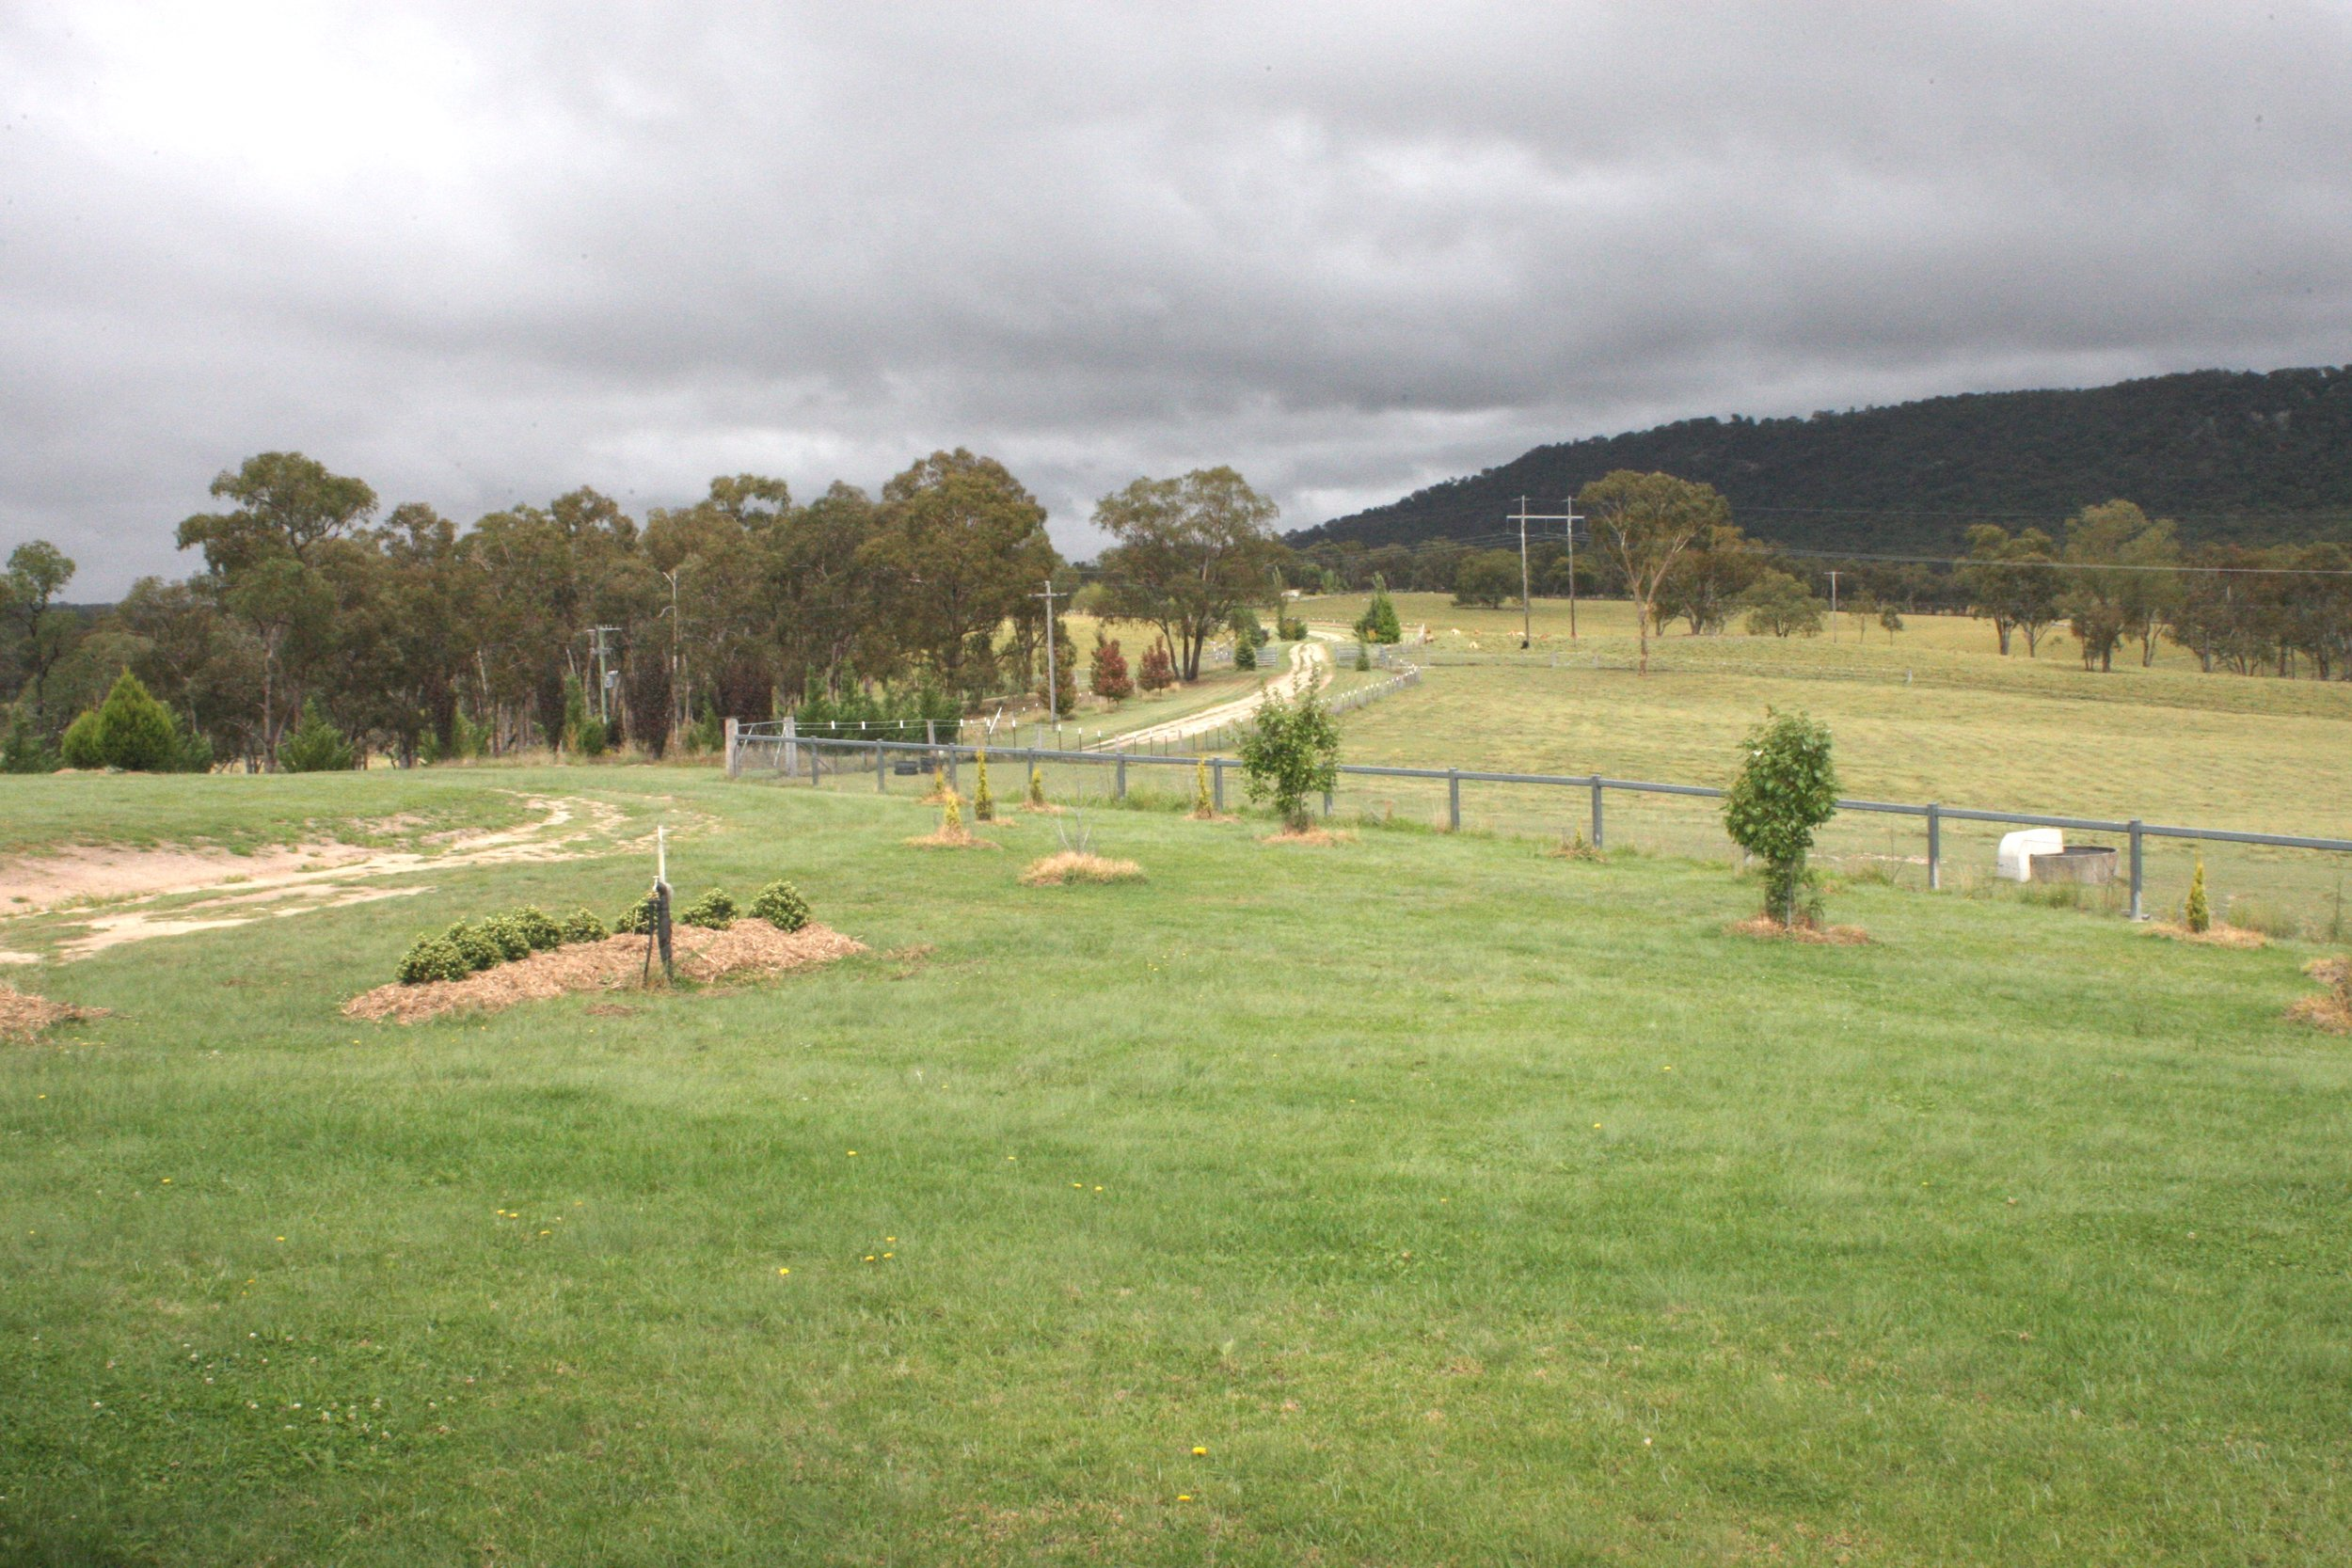 View to the East, garden and paddocks